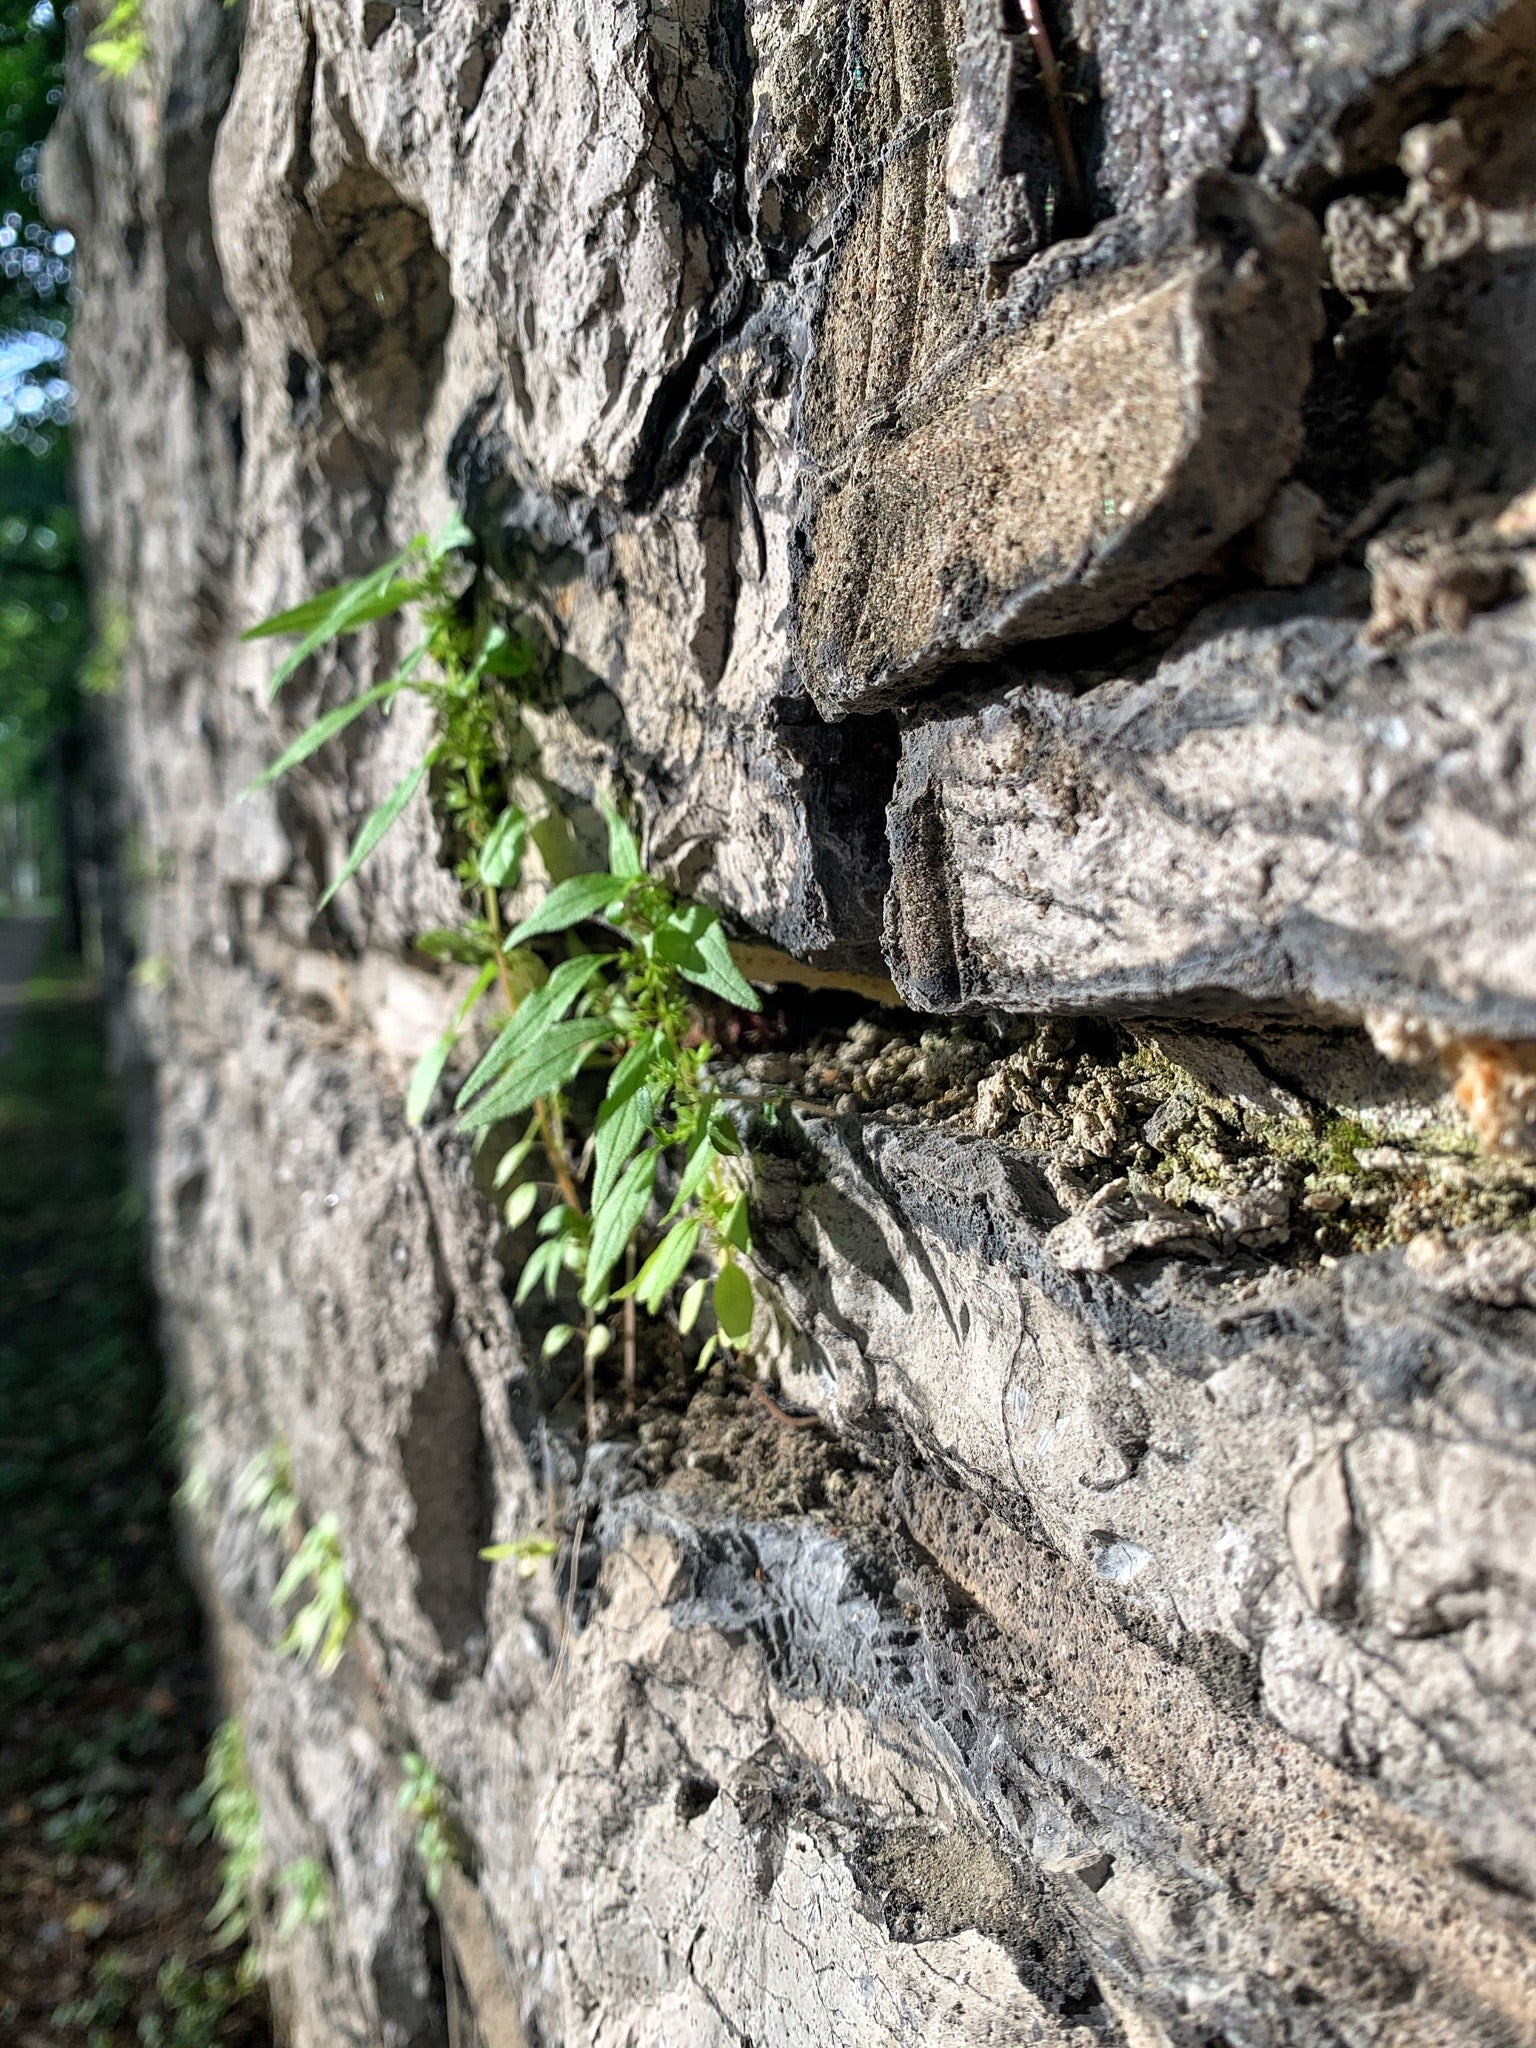 Plant life growing from the stone wall surrounding Sonnenberg Gardens, Canandaigua